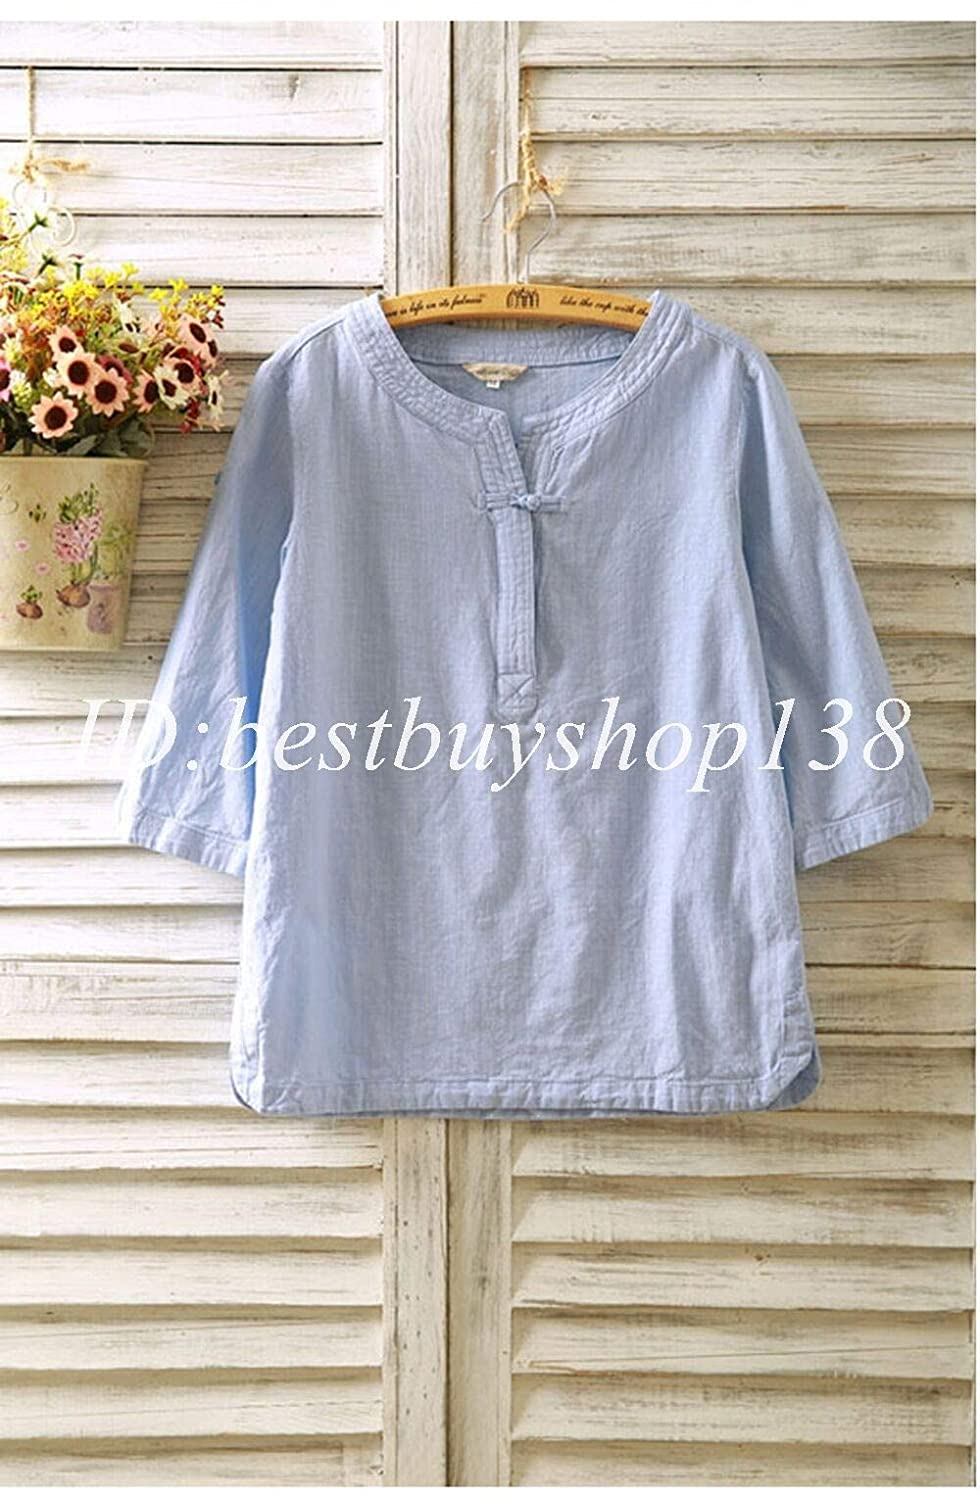 5e81d17f499 Amazon.com  FidgetGear Women Vintage Flax 3 4 Sleeve V Neck Cotton Linen  Loose Tunic Shirt Top Blouse  Clothing